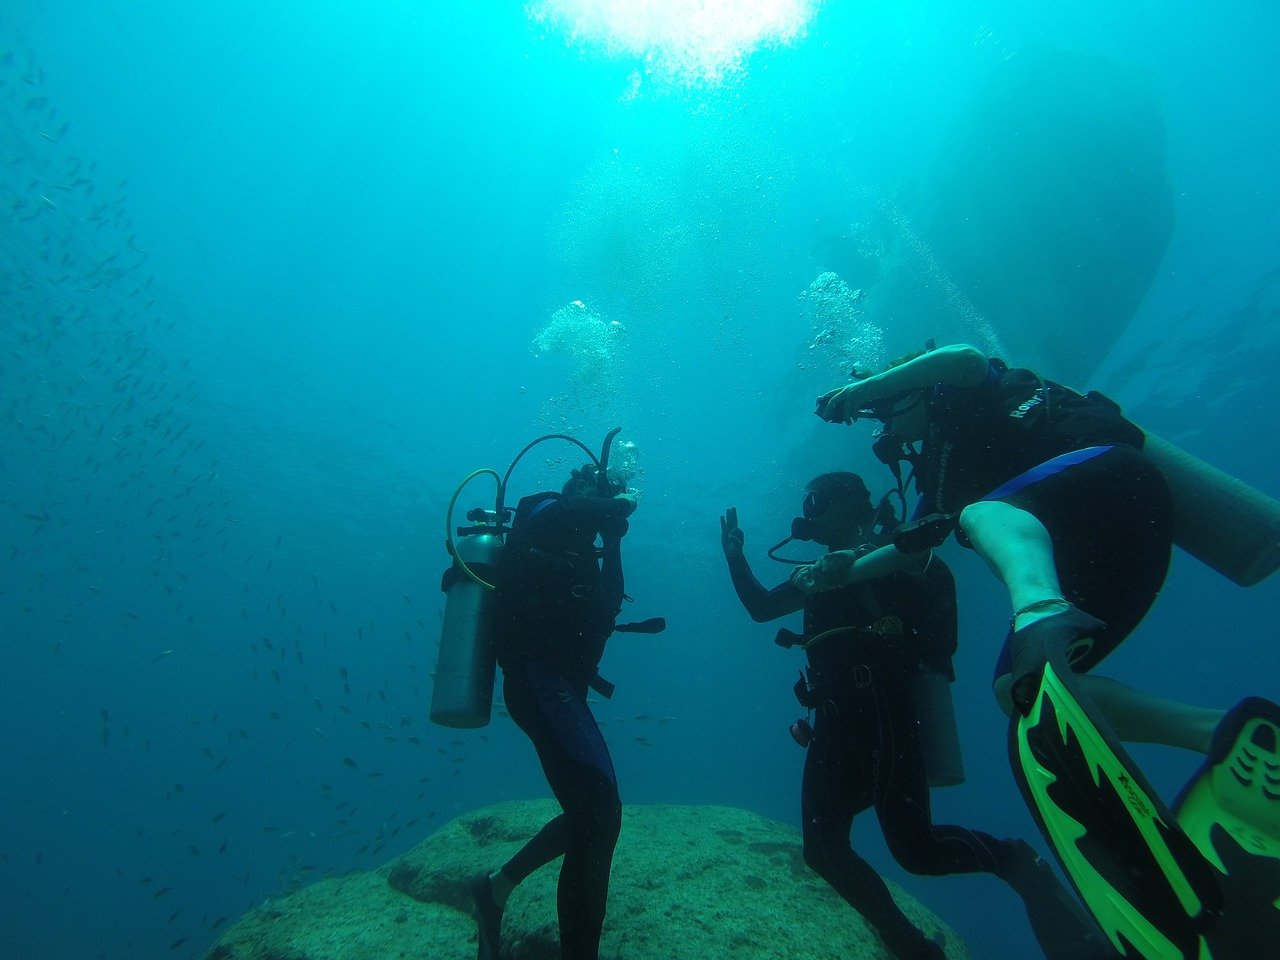 Canyon Lake-Beautiful Location For Scuba Diving in San Antonio City